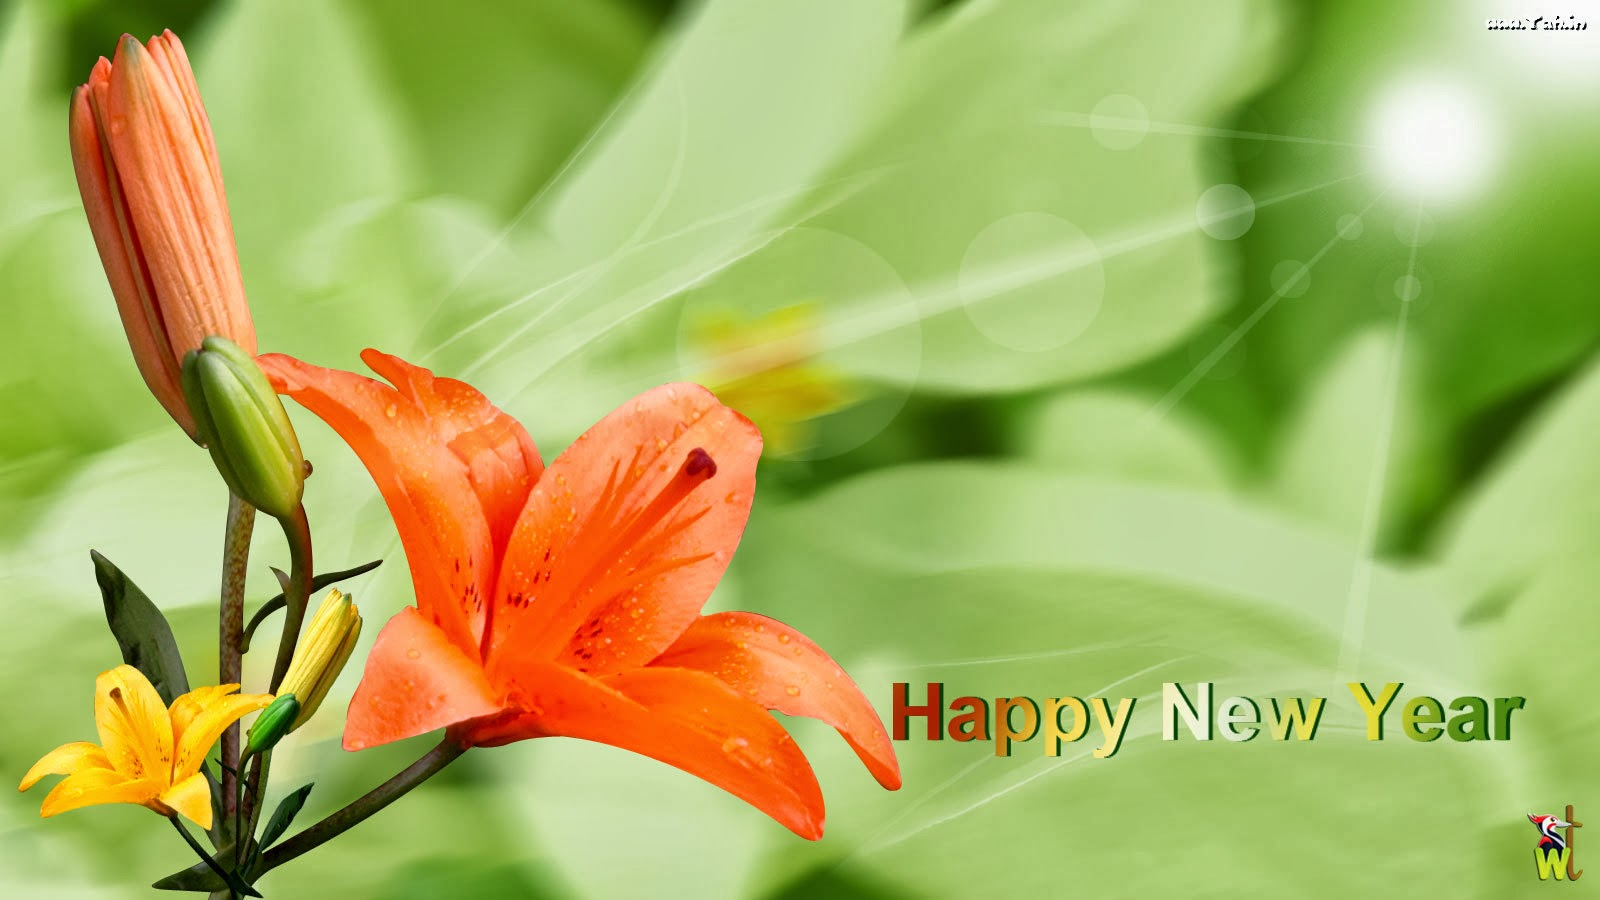 New Year Flower Gifts: Flowers Wishes Wallpapers for New ...